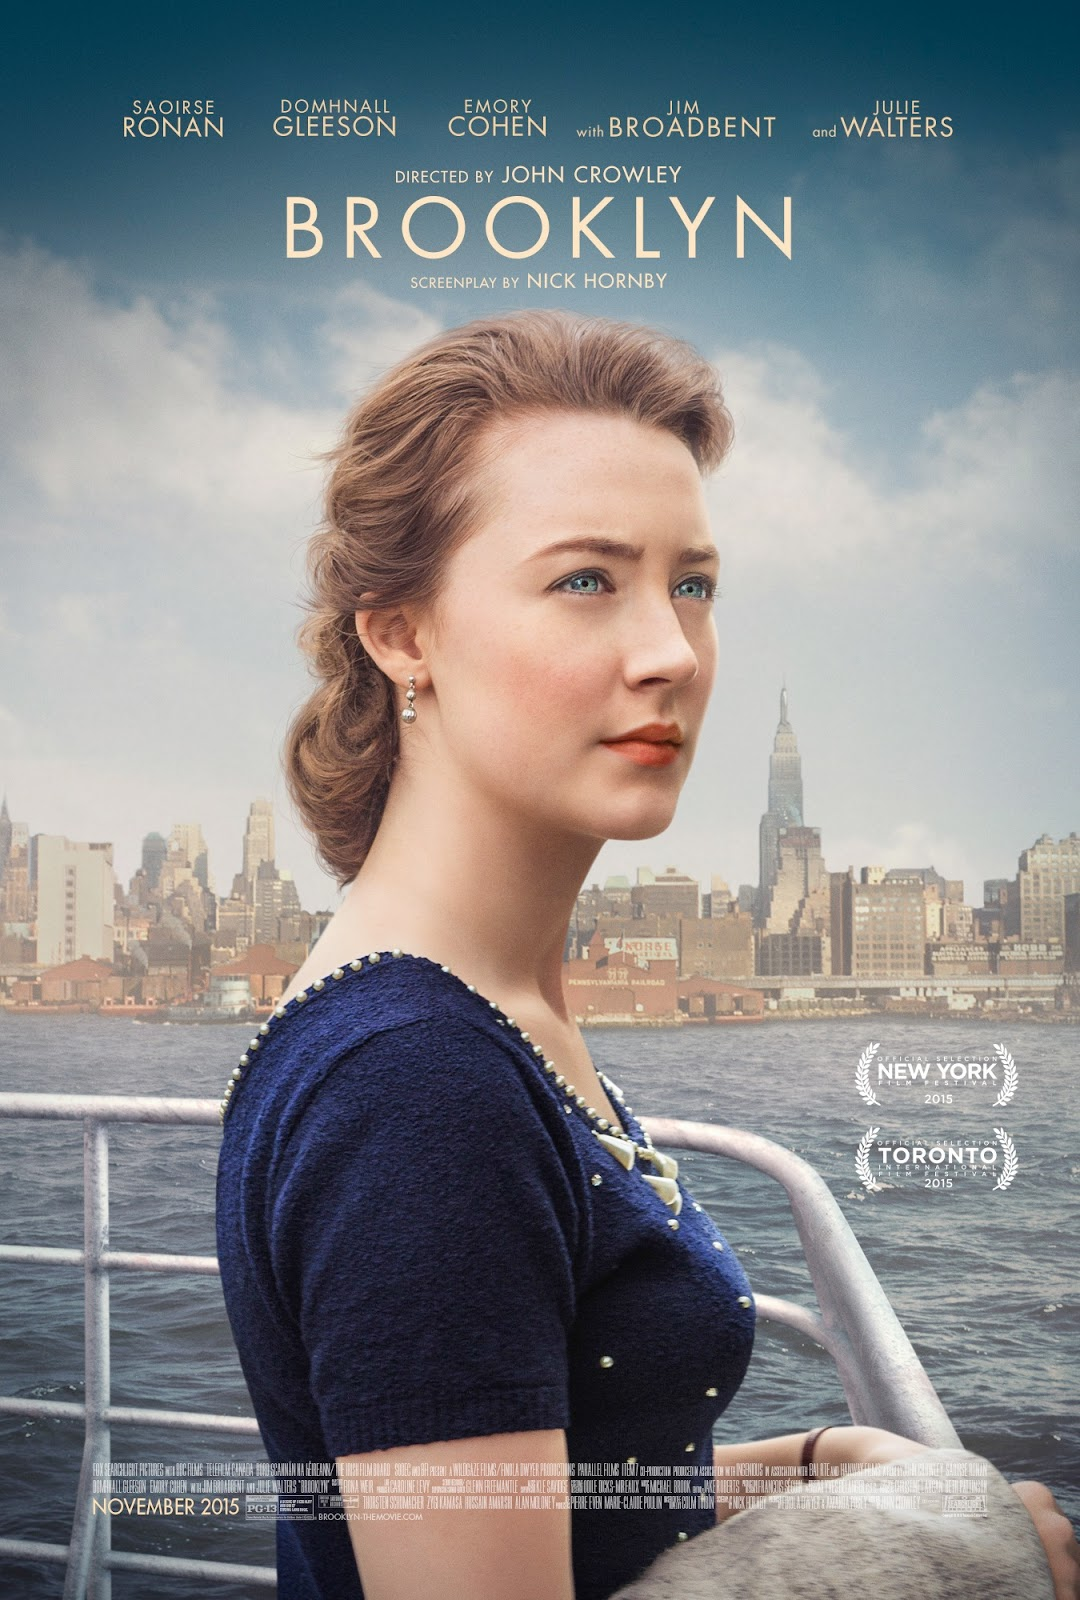 Pelicula Brooklyn (2015) Full HD 1080p Latino - Ingles Online imagen